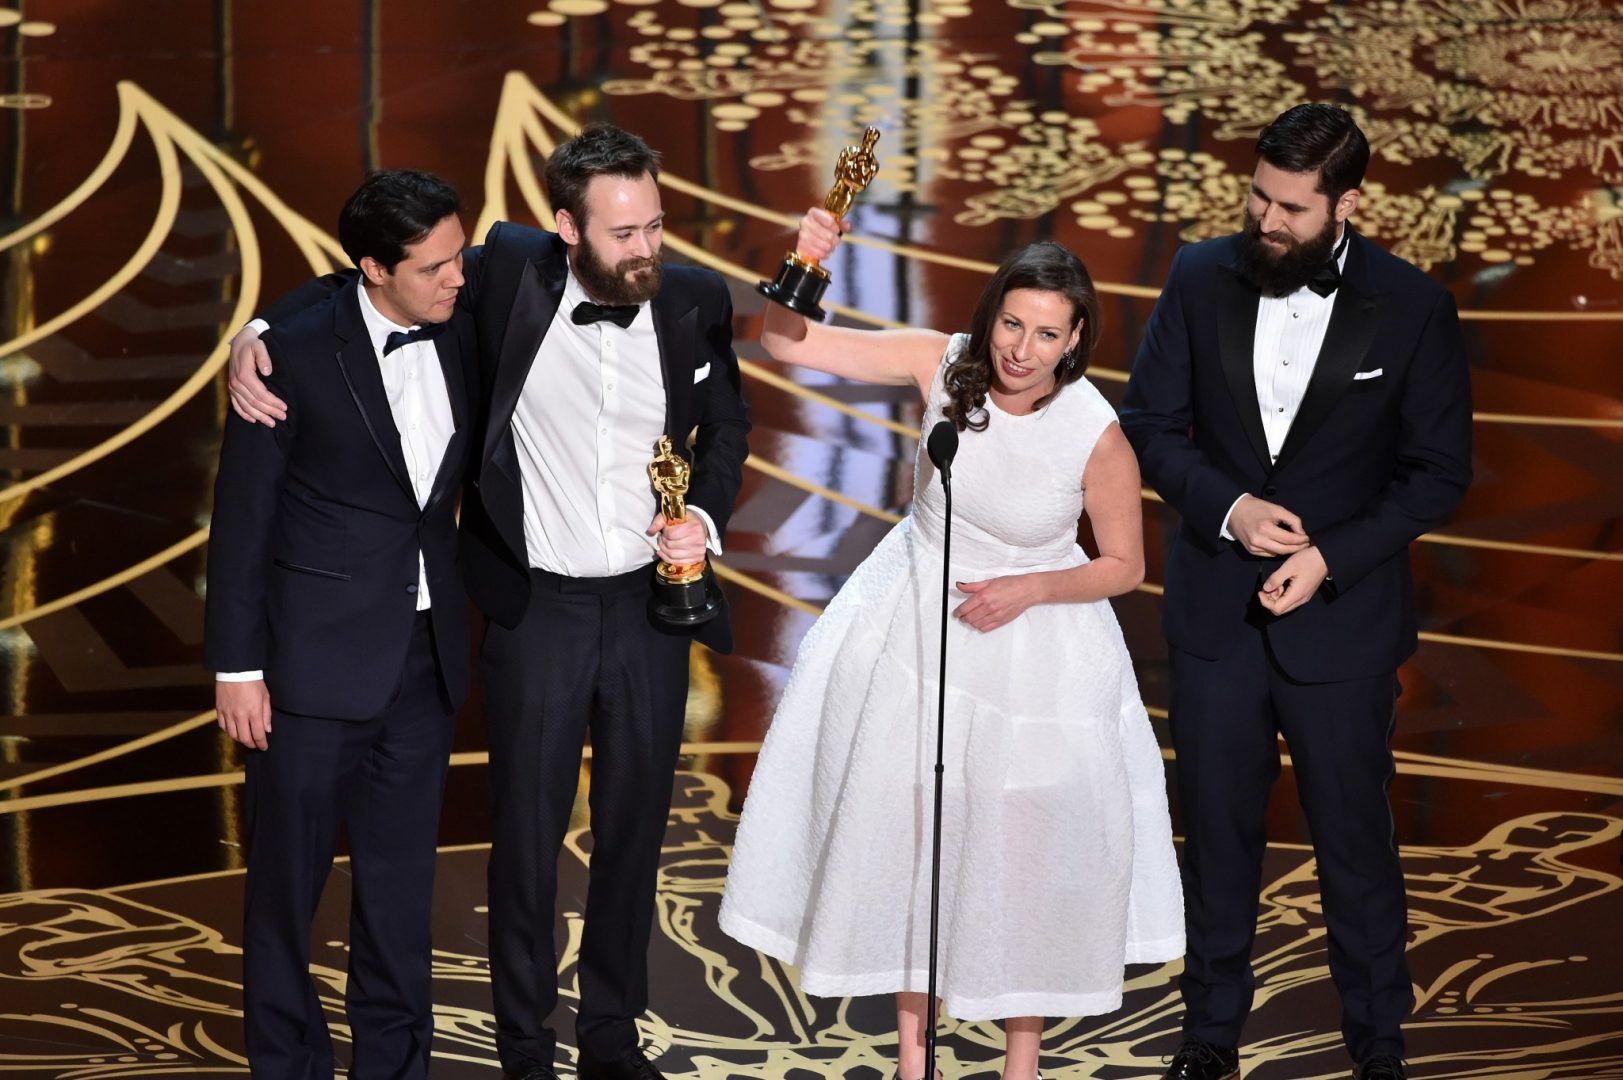 Stutterer team win Oscar